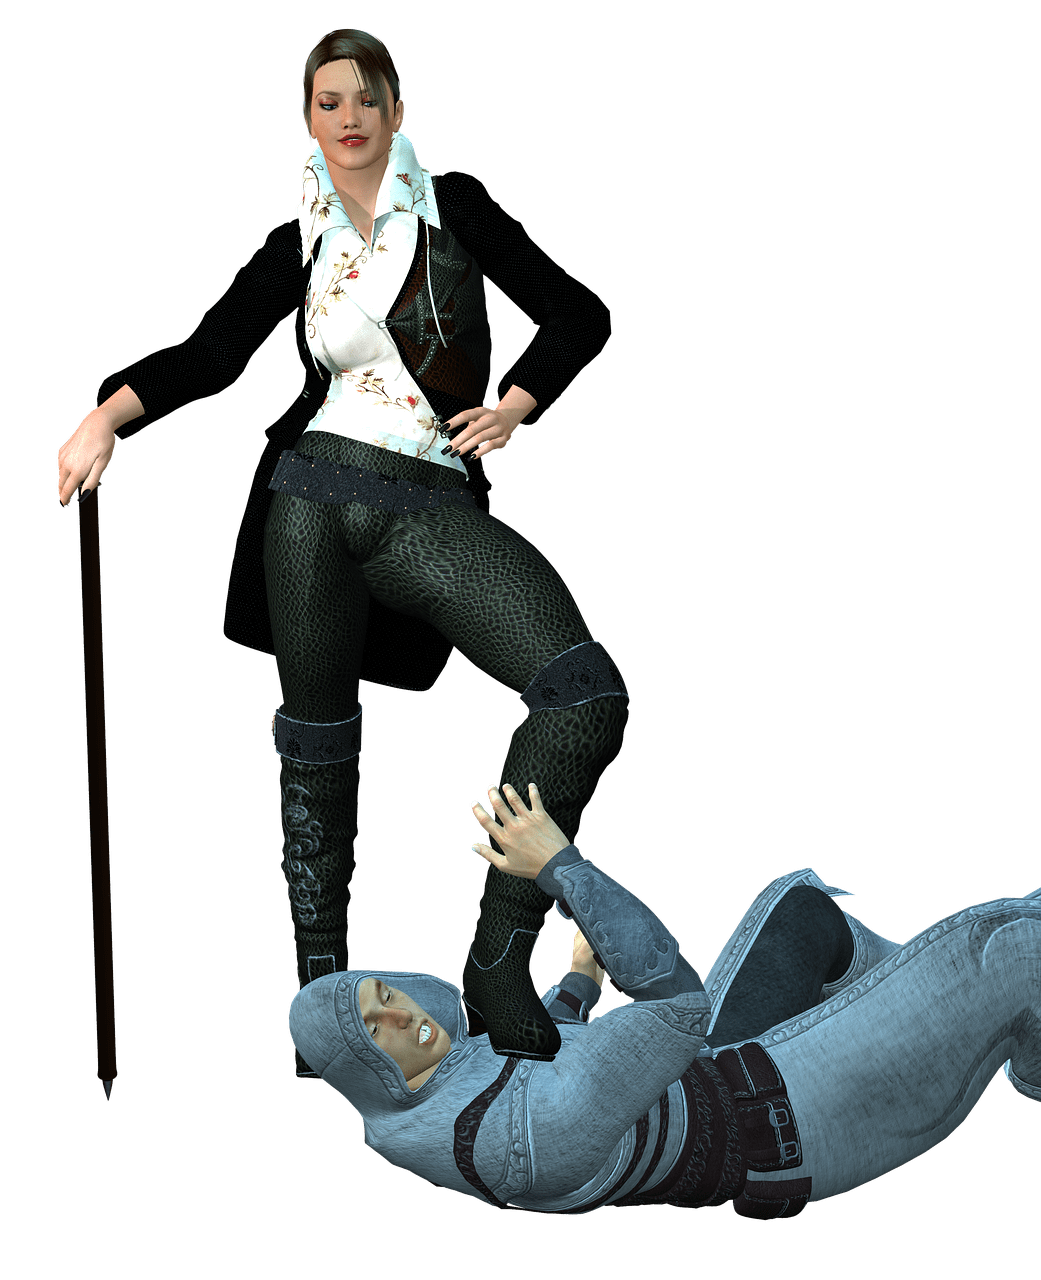 Musketeer foot on knight. Knights clipart woman